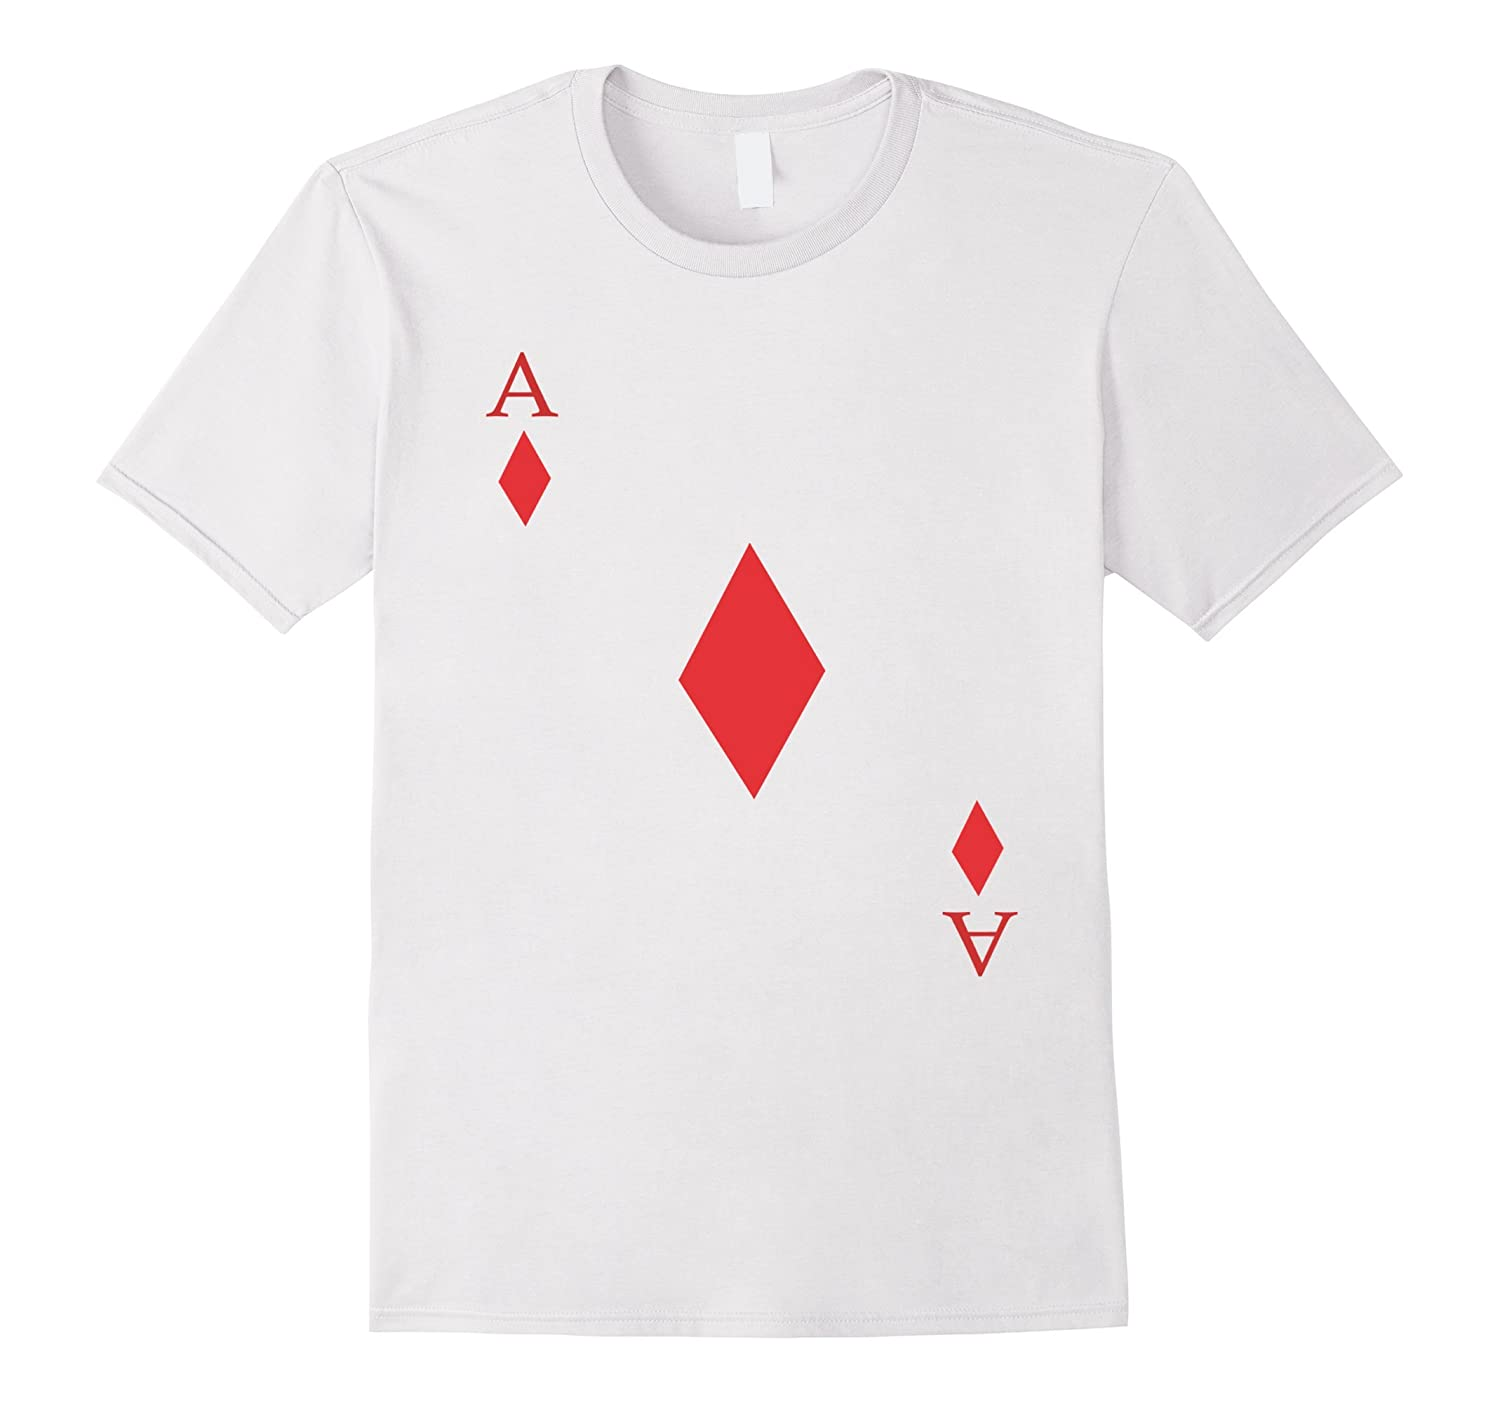 Ace of Diamonds Tshirt Costume - Be Part of a Poker Hand!-Art